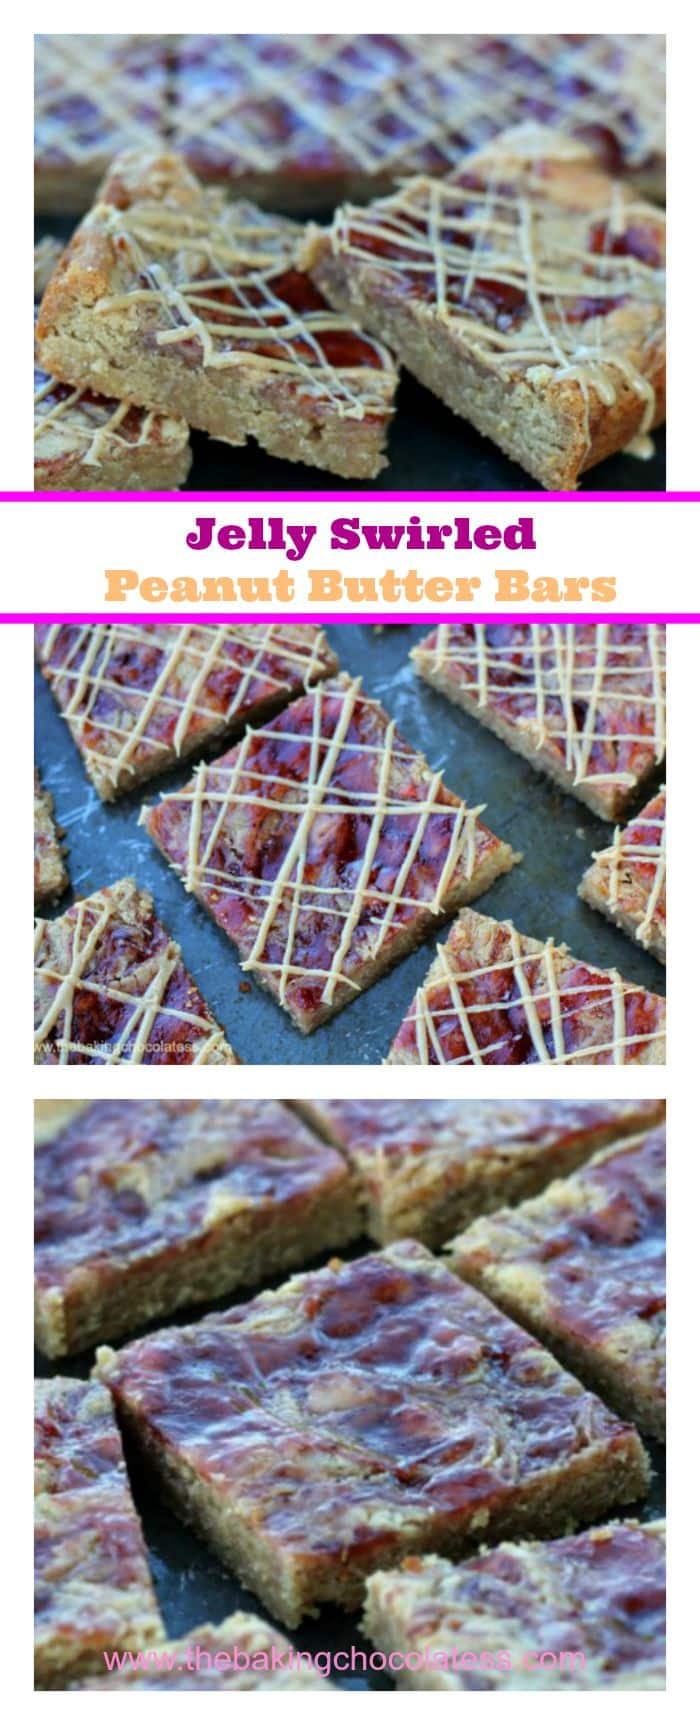 Jelly Swirled Peanut Butter Bars